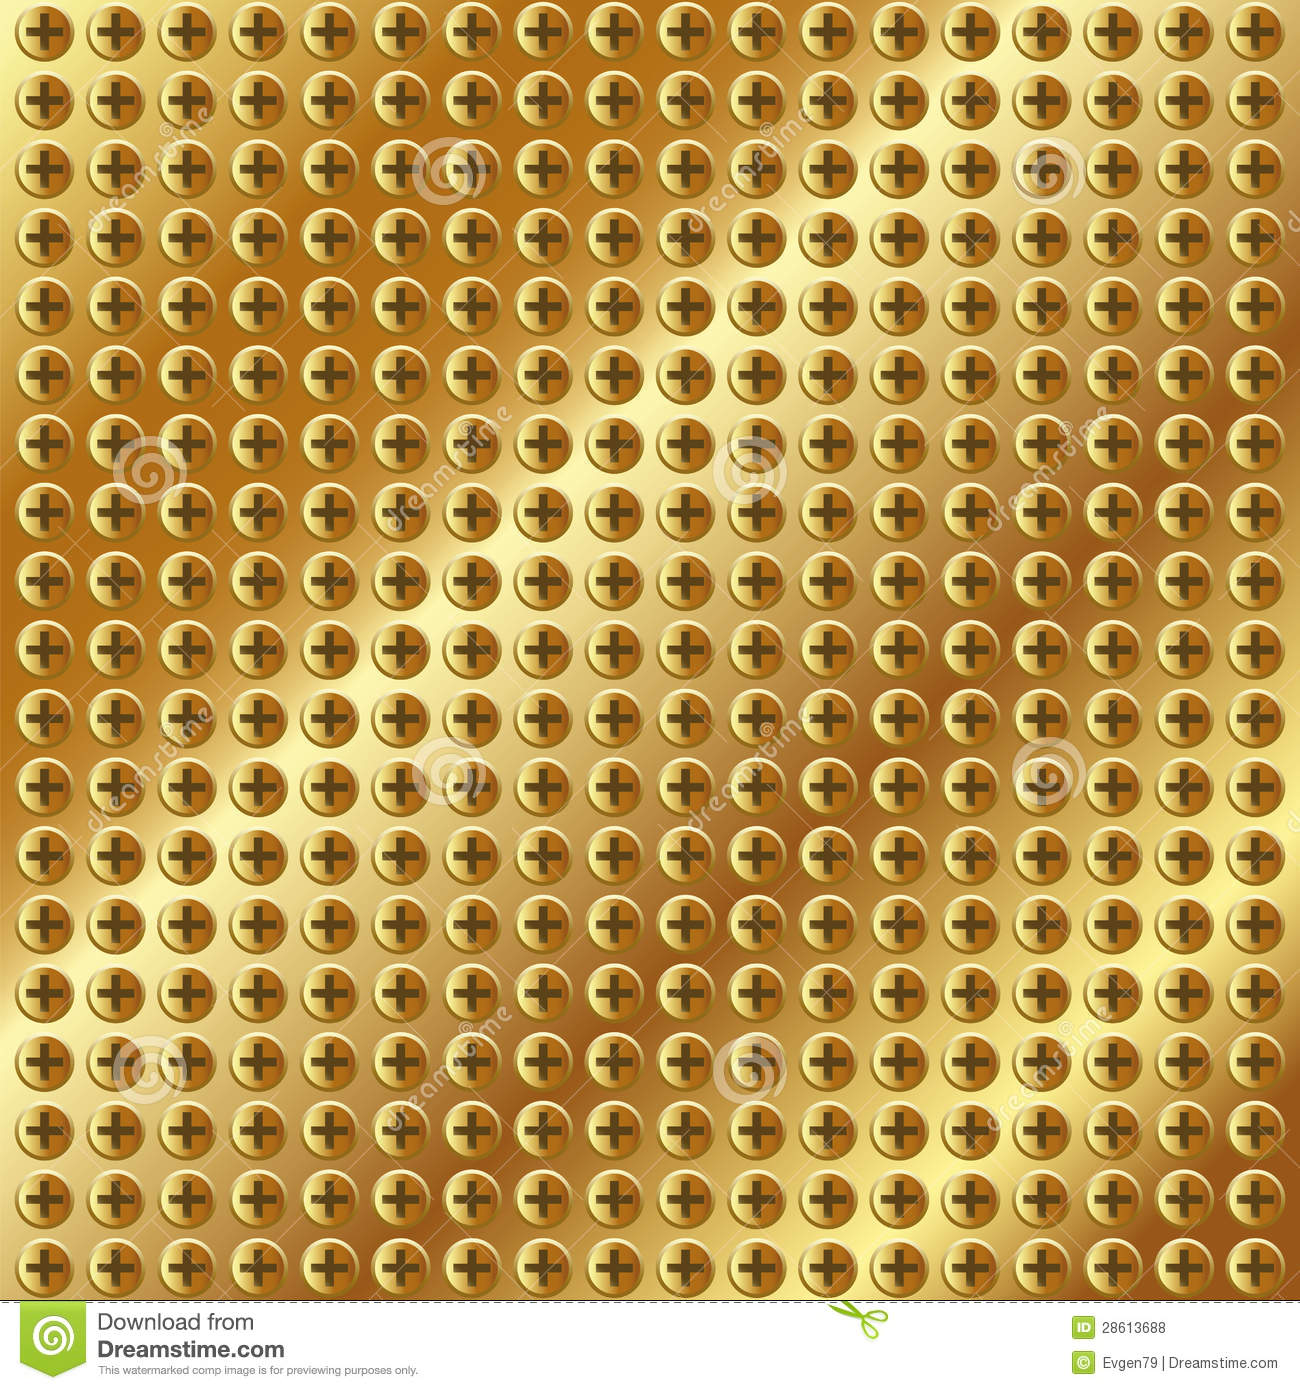 3d Shamrock Wallpaper Metallic Gold Background With Screws Stock Photo Image